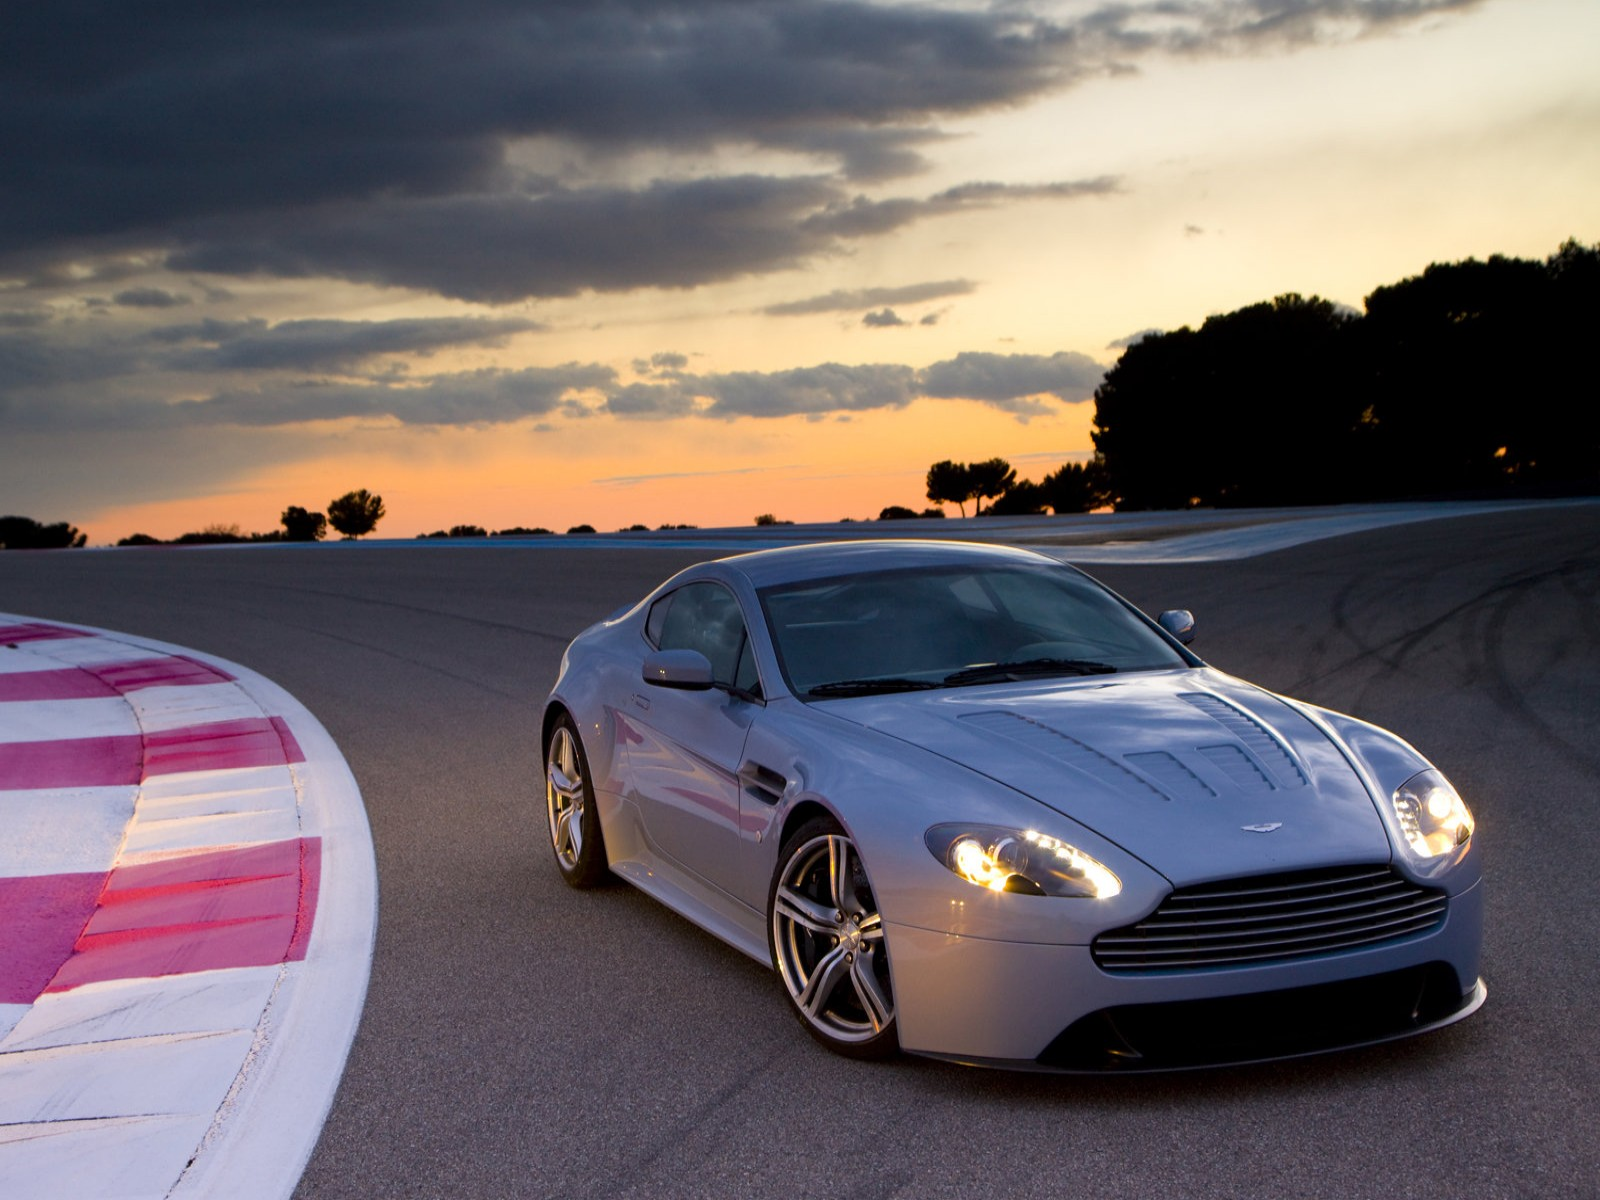 2007 Aston Martin V12 Vantage RS Concept photo - 1